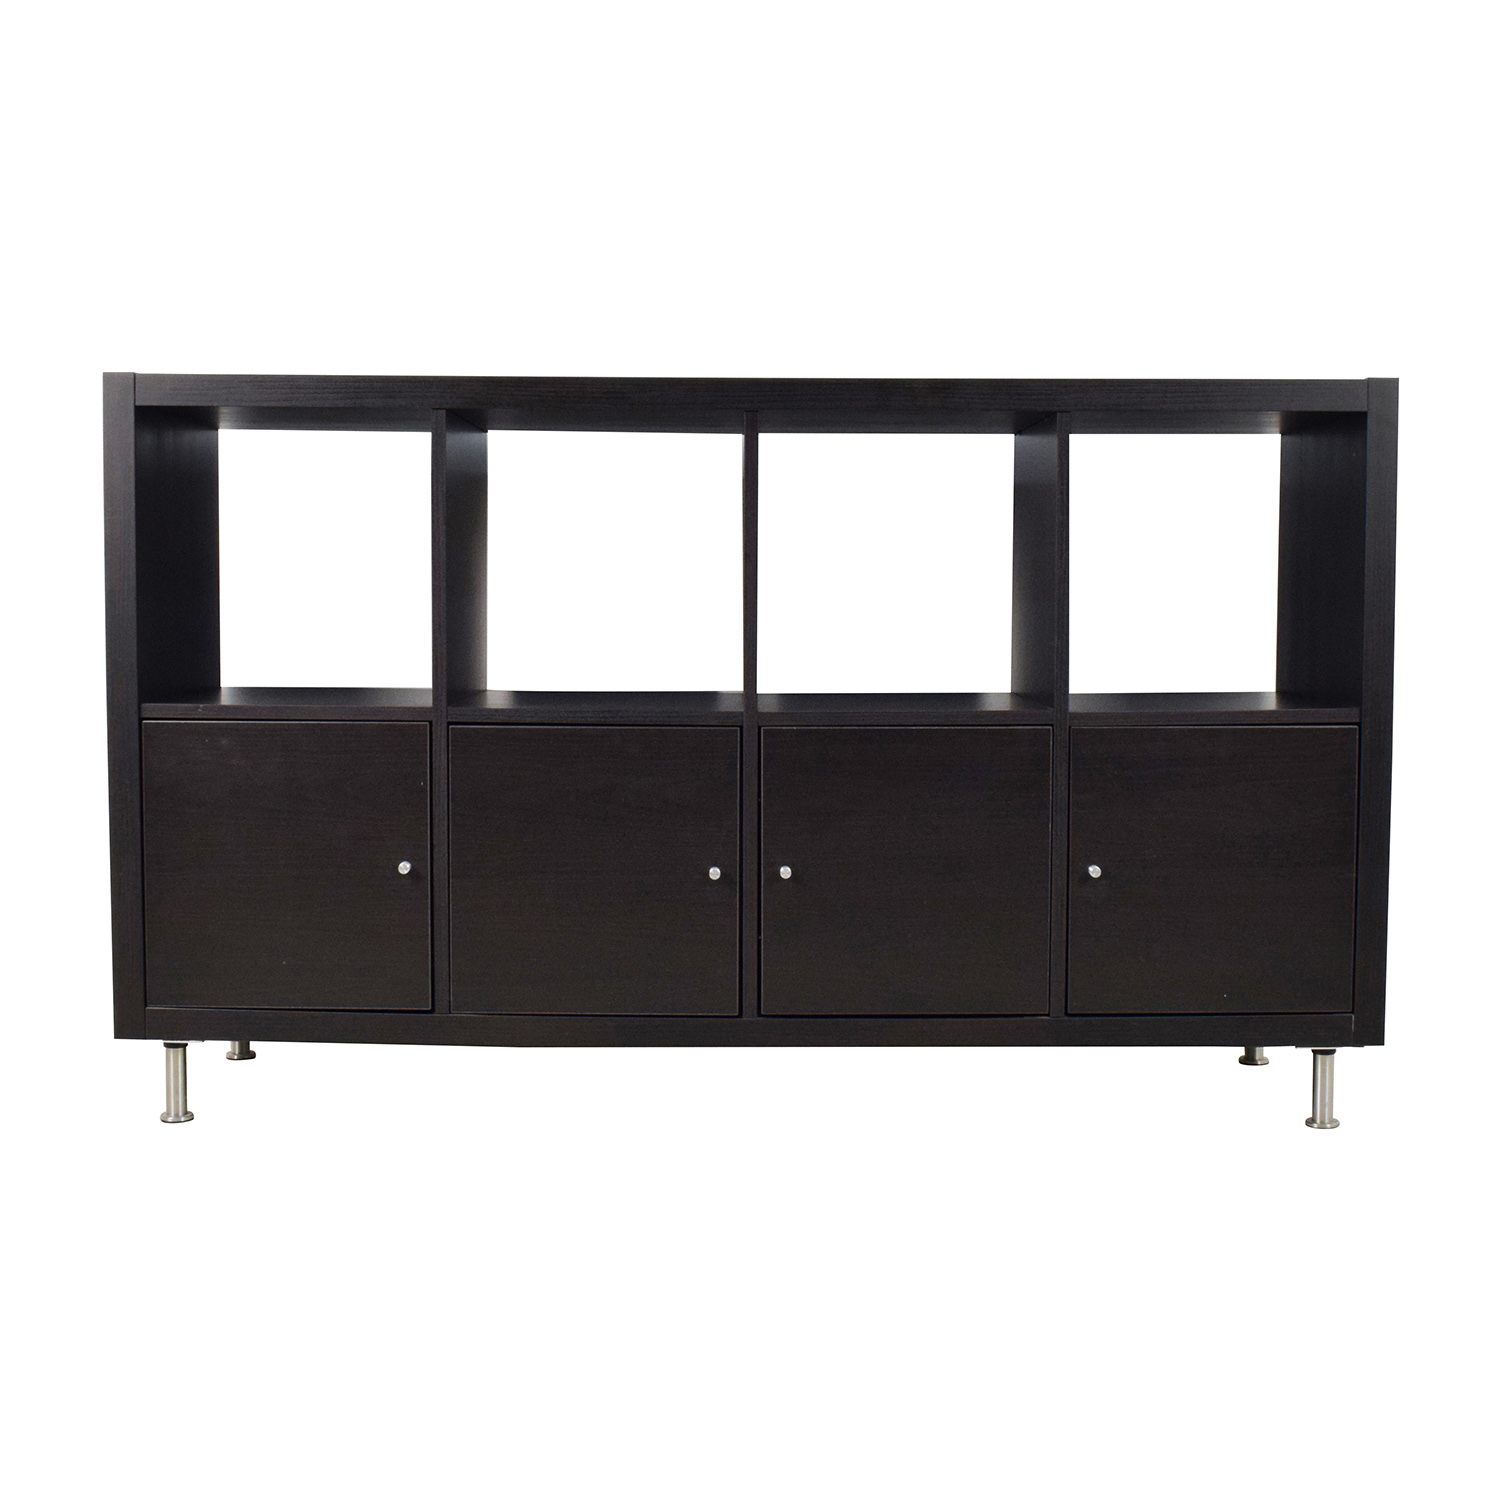 IKEA IKEA Kallax Black Shelf Unit Media Units